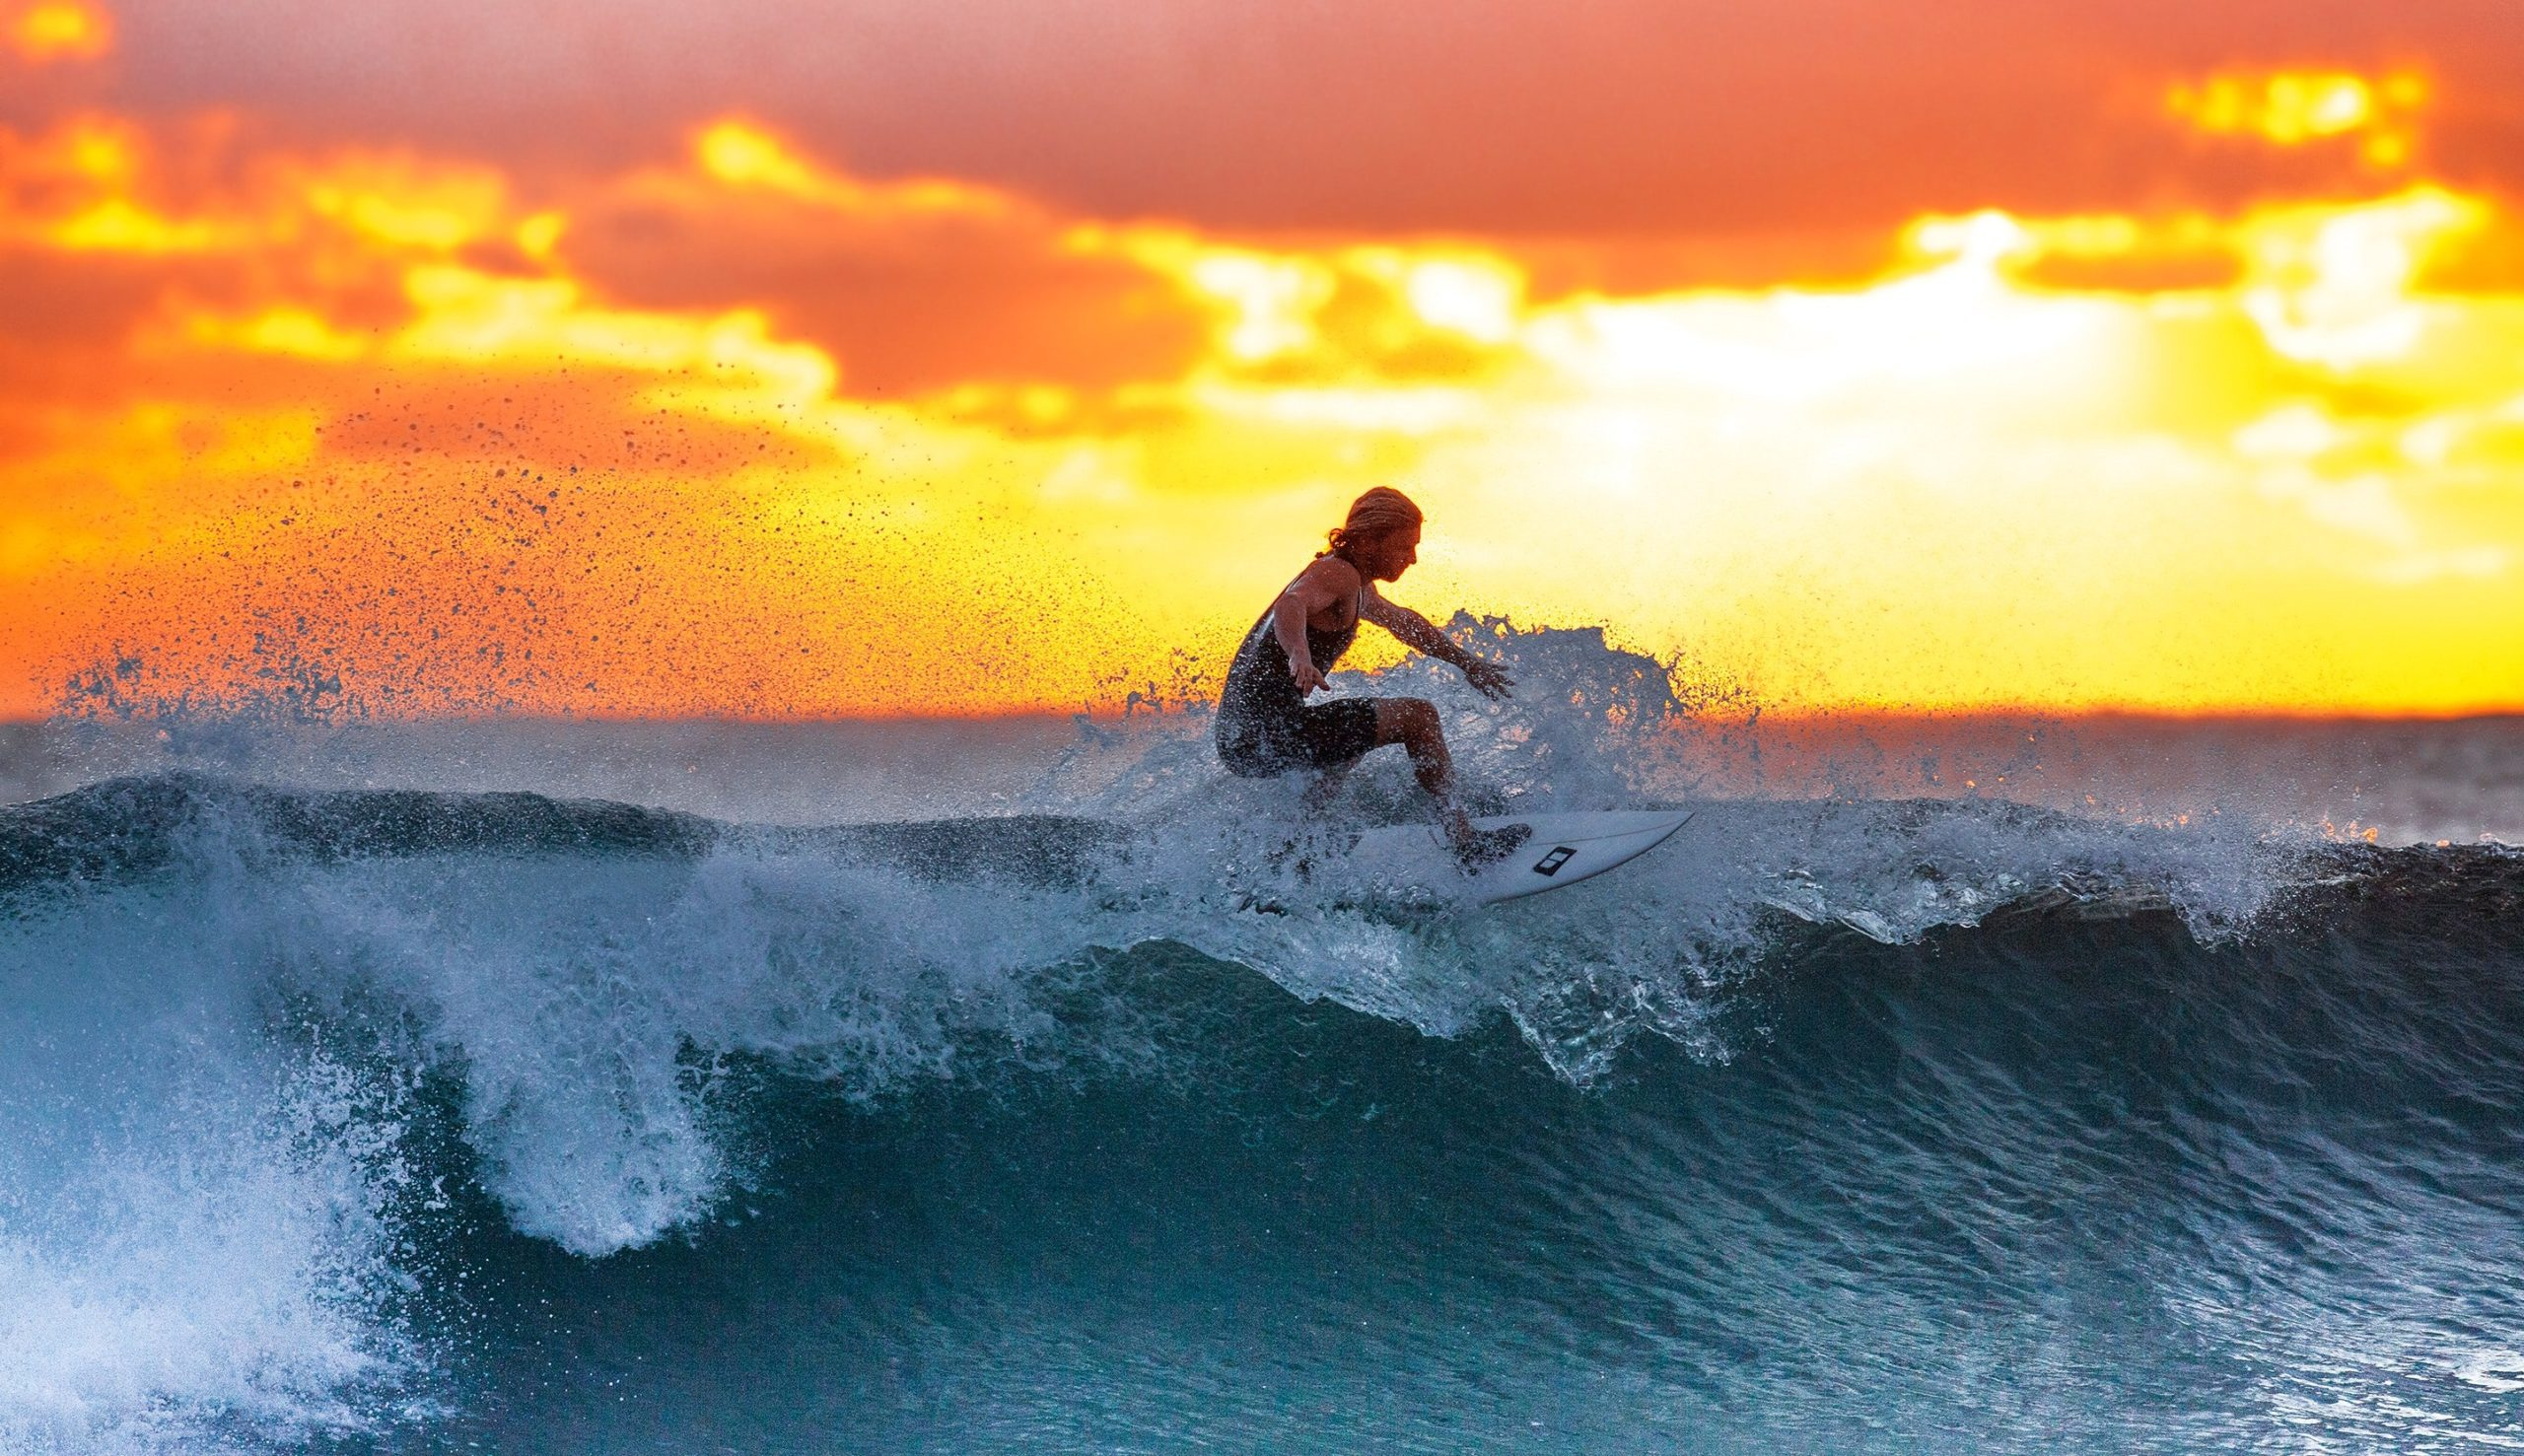 Surfing Guide - Fun Ways To Have Fun In The Water